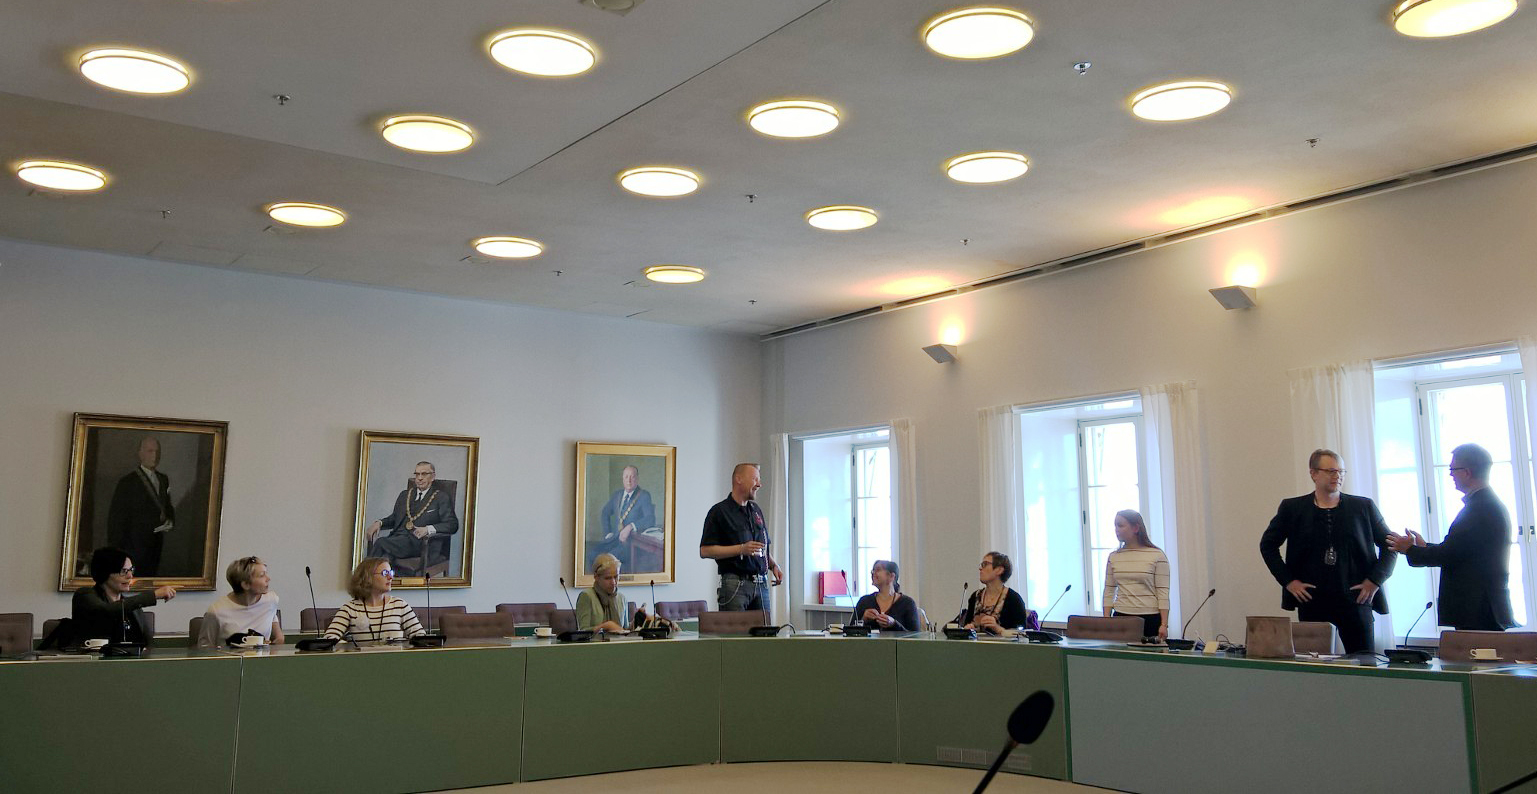 Wrap-up meeting for the Netherlands study trip at Helsinki City Hall